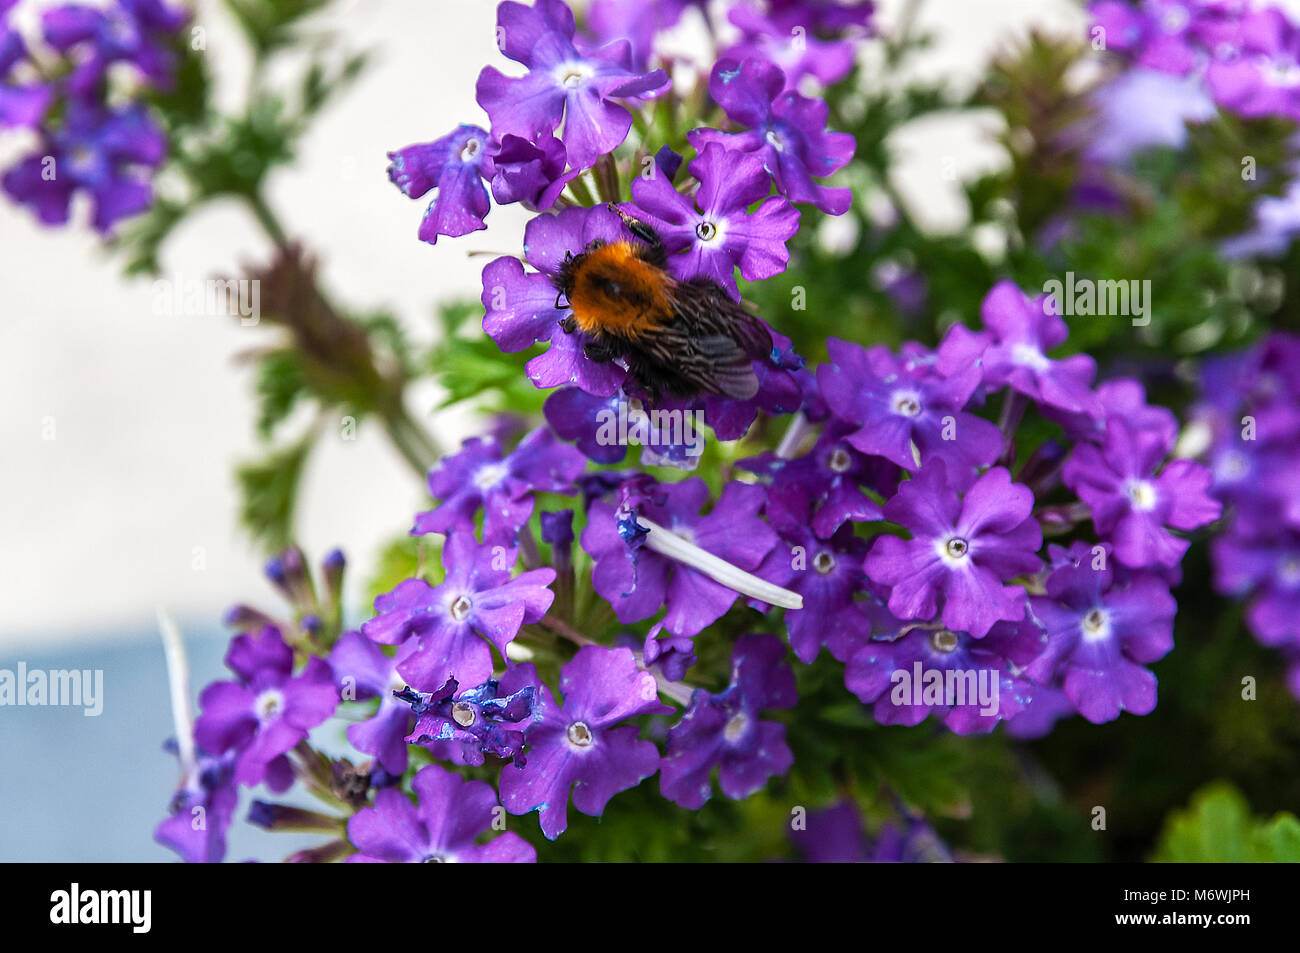 close up of a a bee sitting on a purple flower Stock Photo